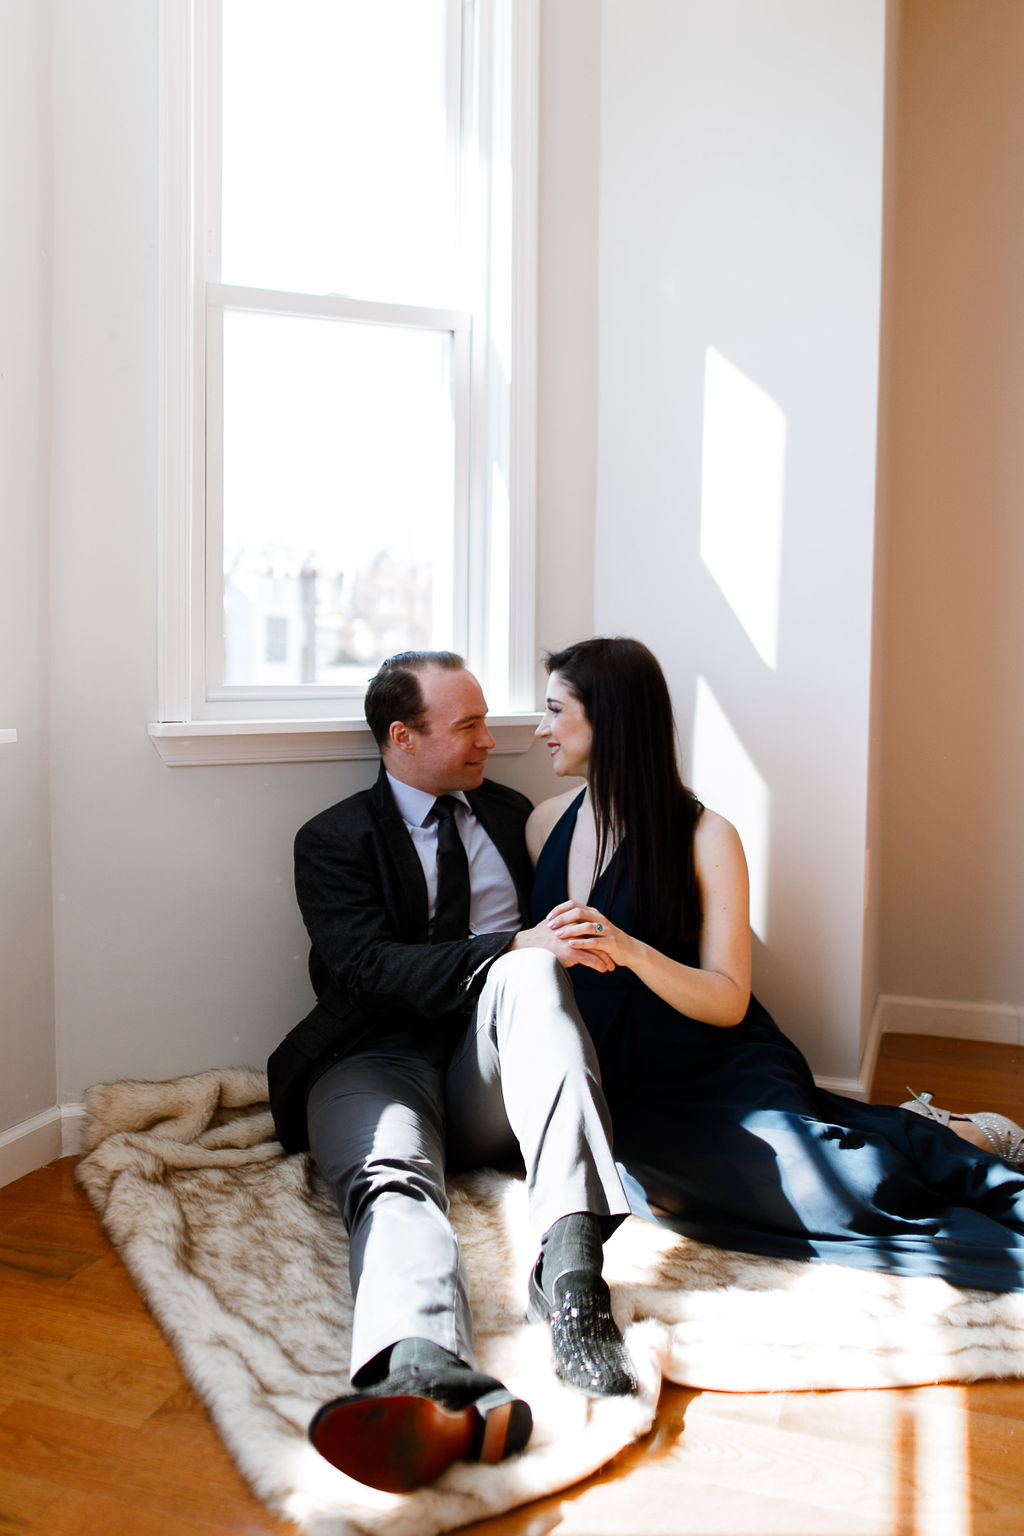 G&G New Home Philly LGBTQ Engagement Session22.jpg